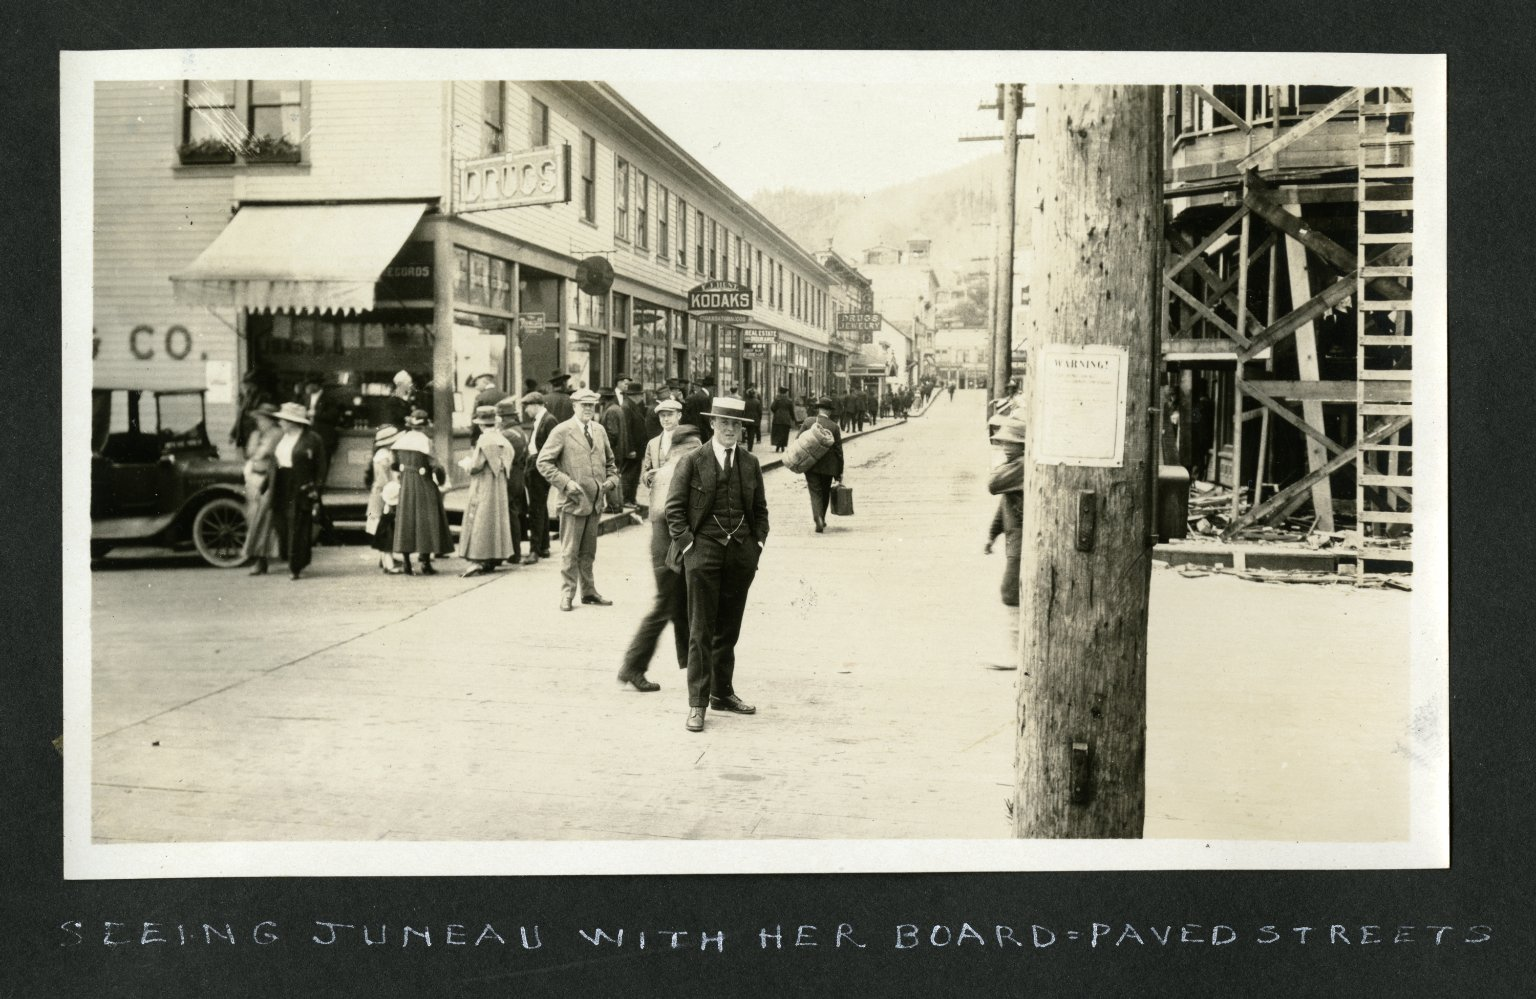 Seeing Juneau with Her Board=Paved Streets